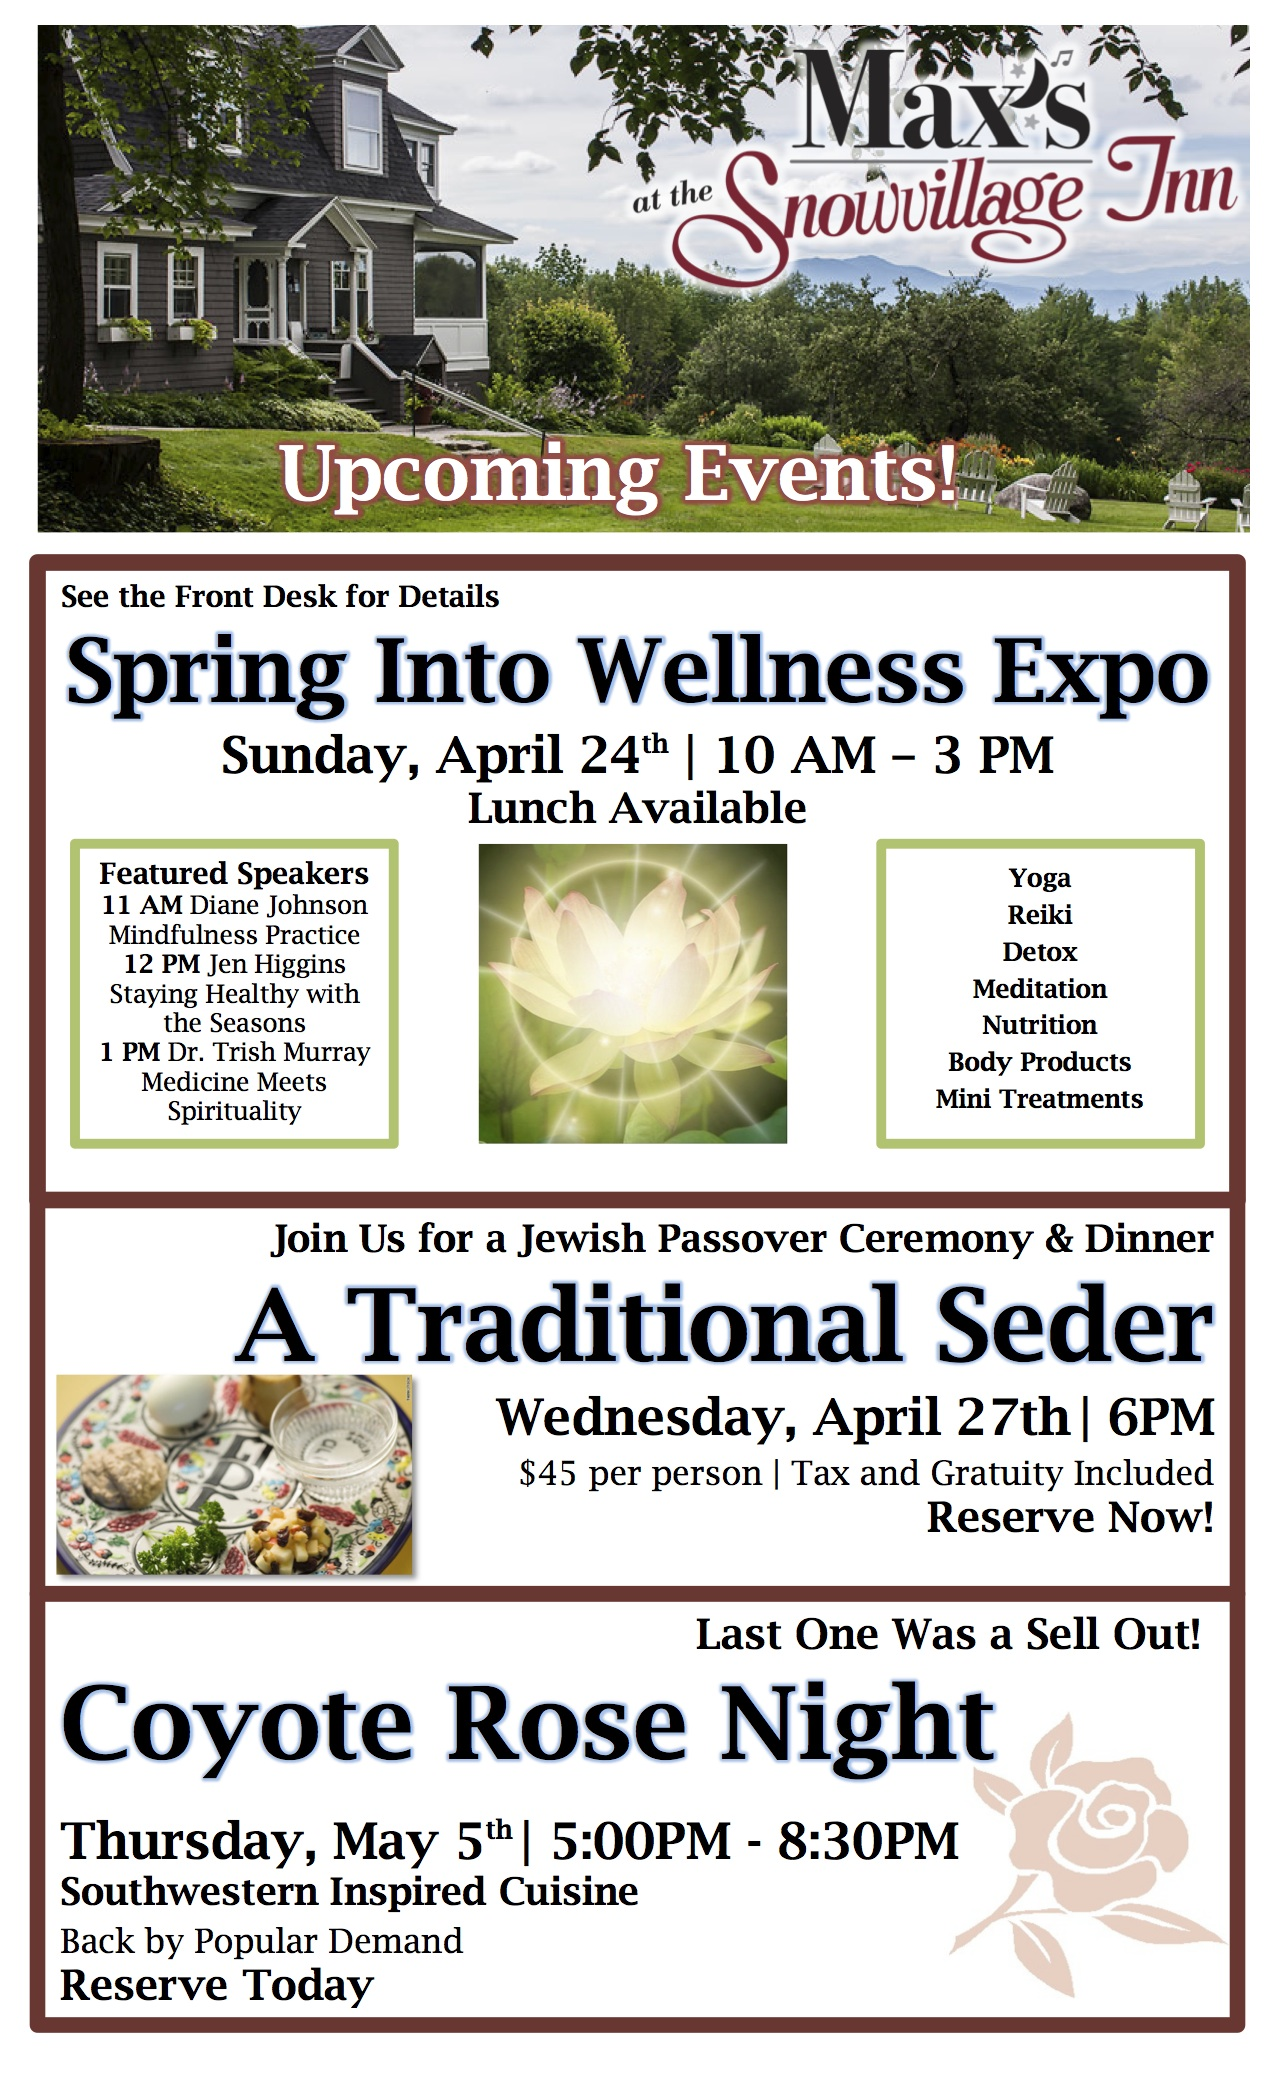 Awesome Upcoming Events, Things to do, upcoming events, dining out in Conway nh, the woodshed nh, the woodshed restaurant moultonboro nh, special occasion restaurant, romantic dinner for two, romantic dinner, Peter willis, dining in conway nh, north conway nh, valley originals, farm to table, locally sourced, fine dining in conway nh, places to eat, pub food, martini bar, whiskey bar, rye bar